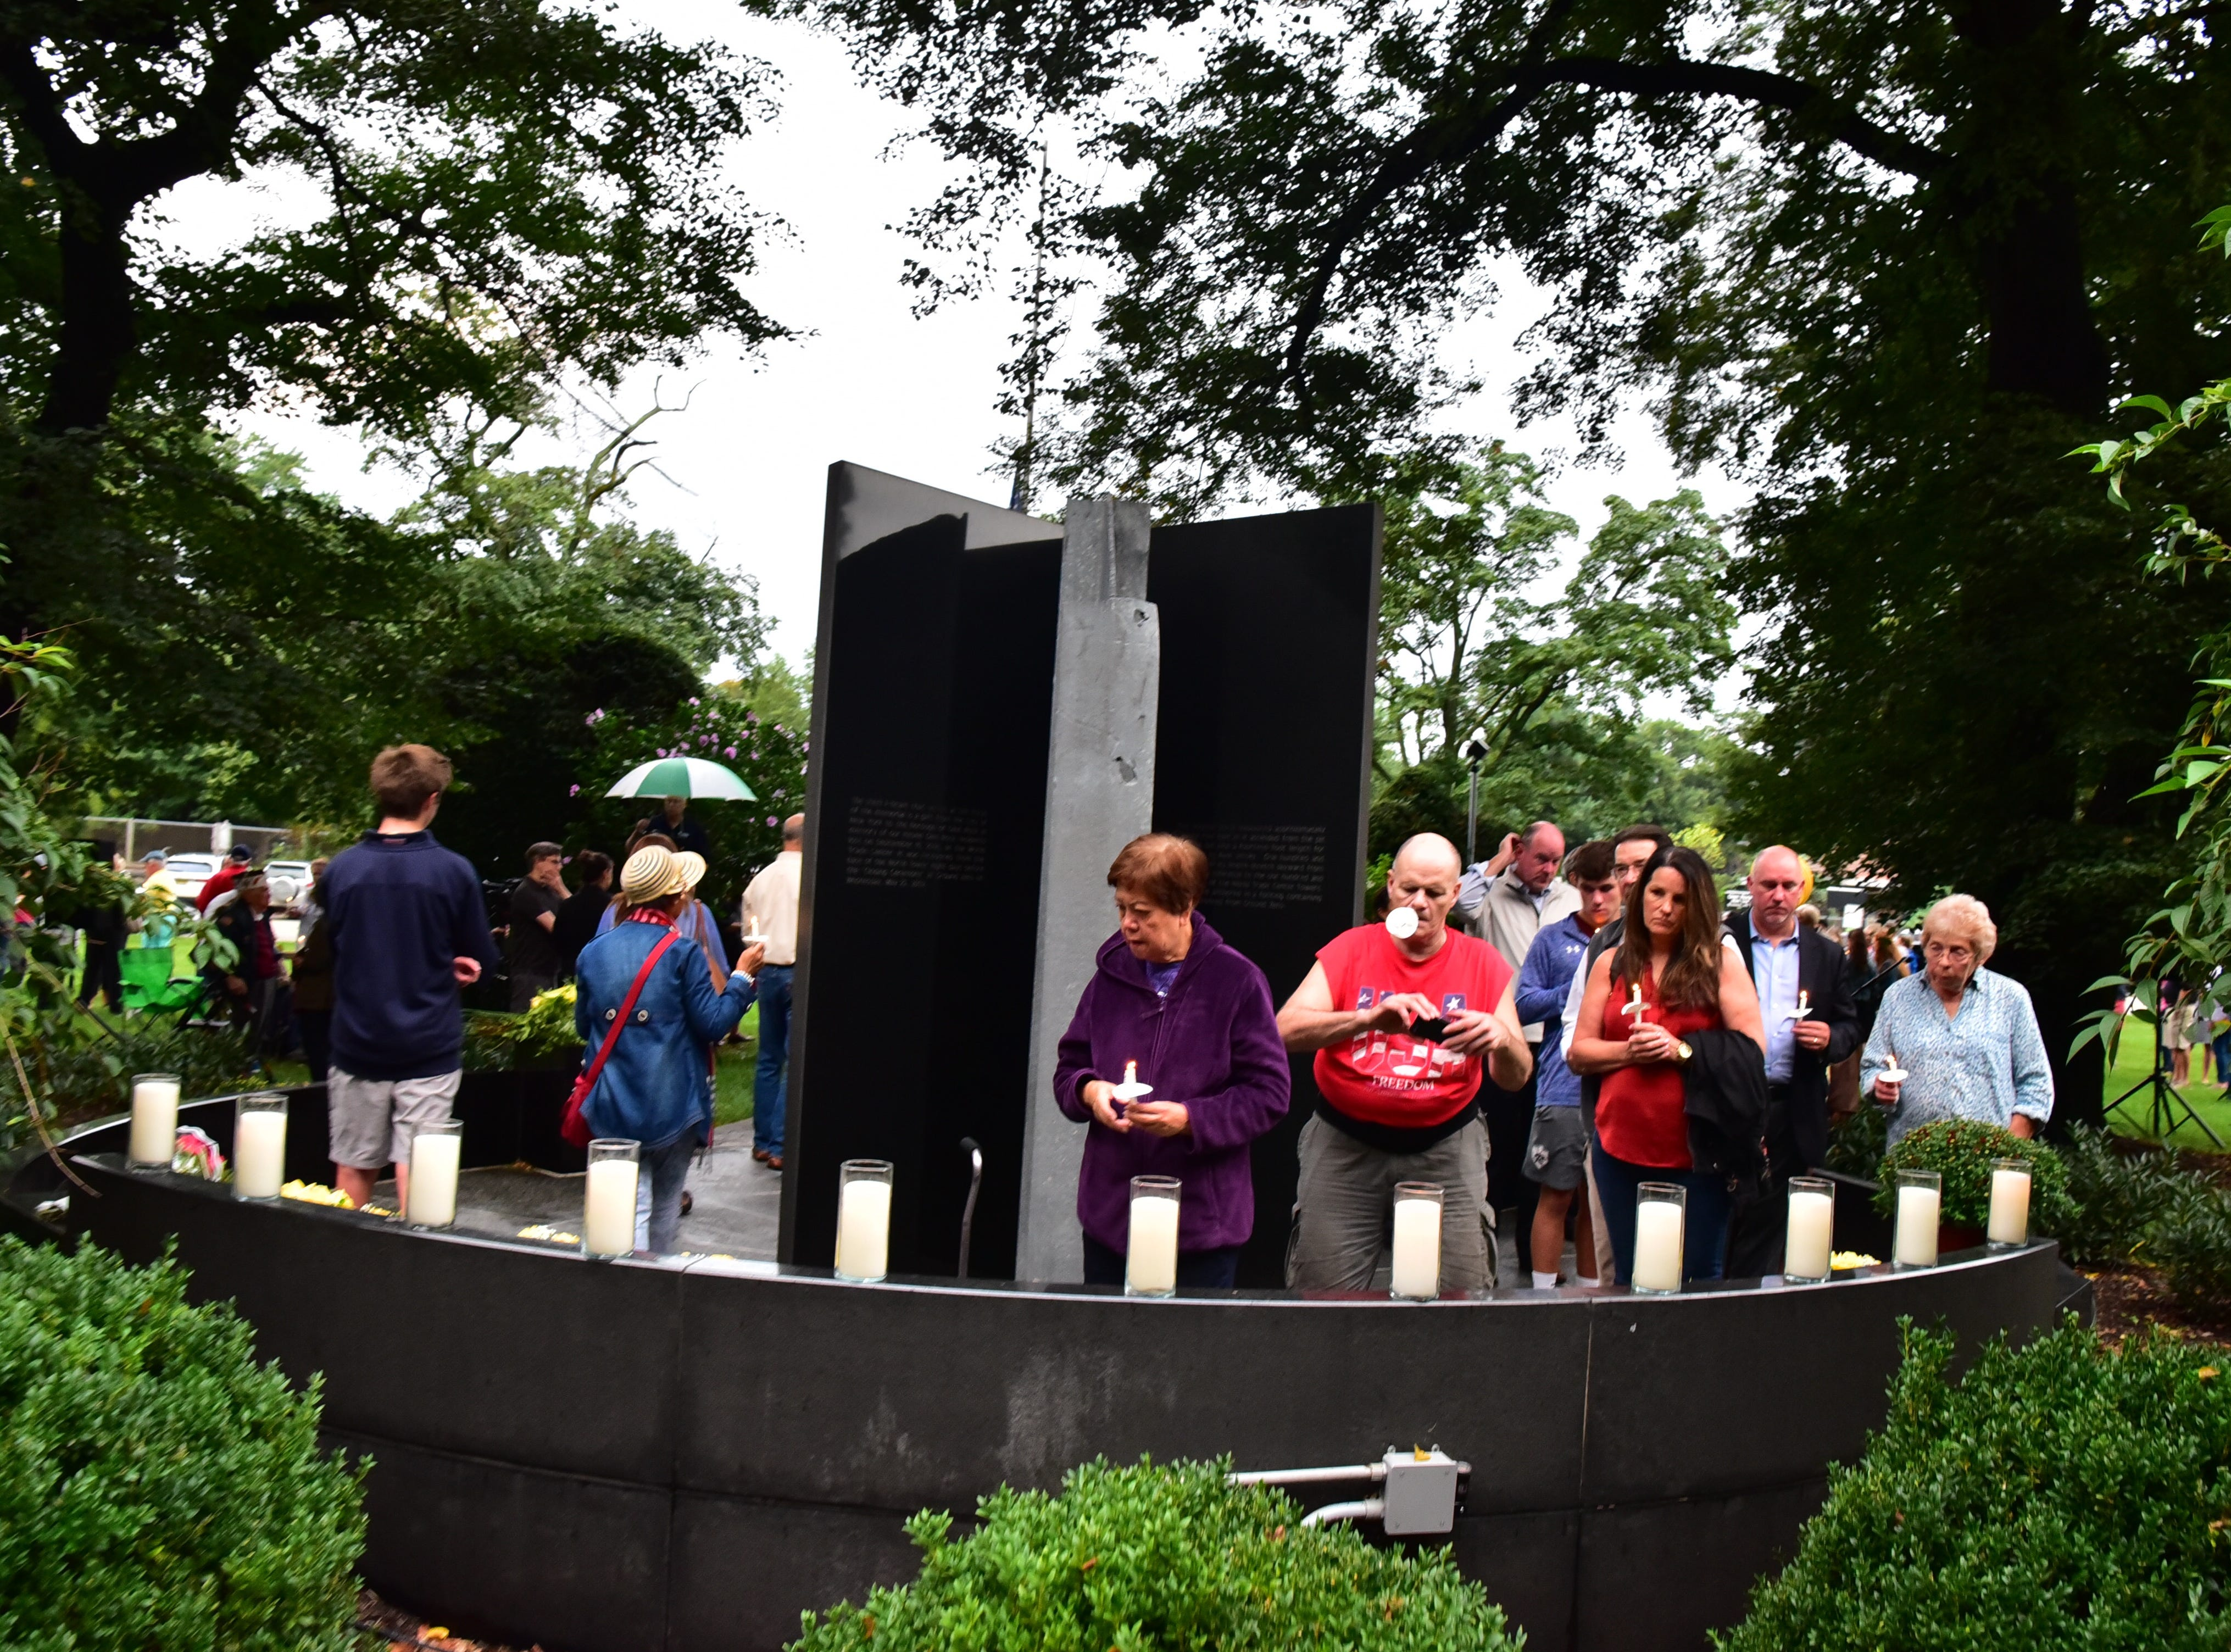 Visitors pay respect to the 9-11 victims at the memorial in Glen Rock, NJ.